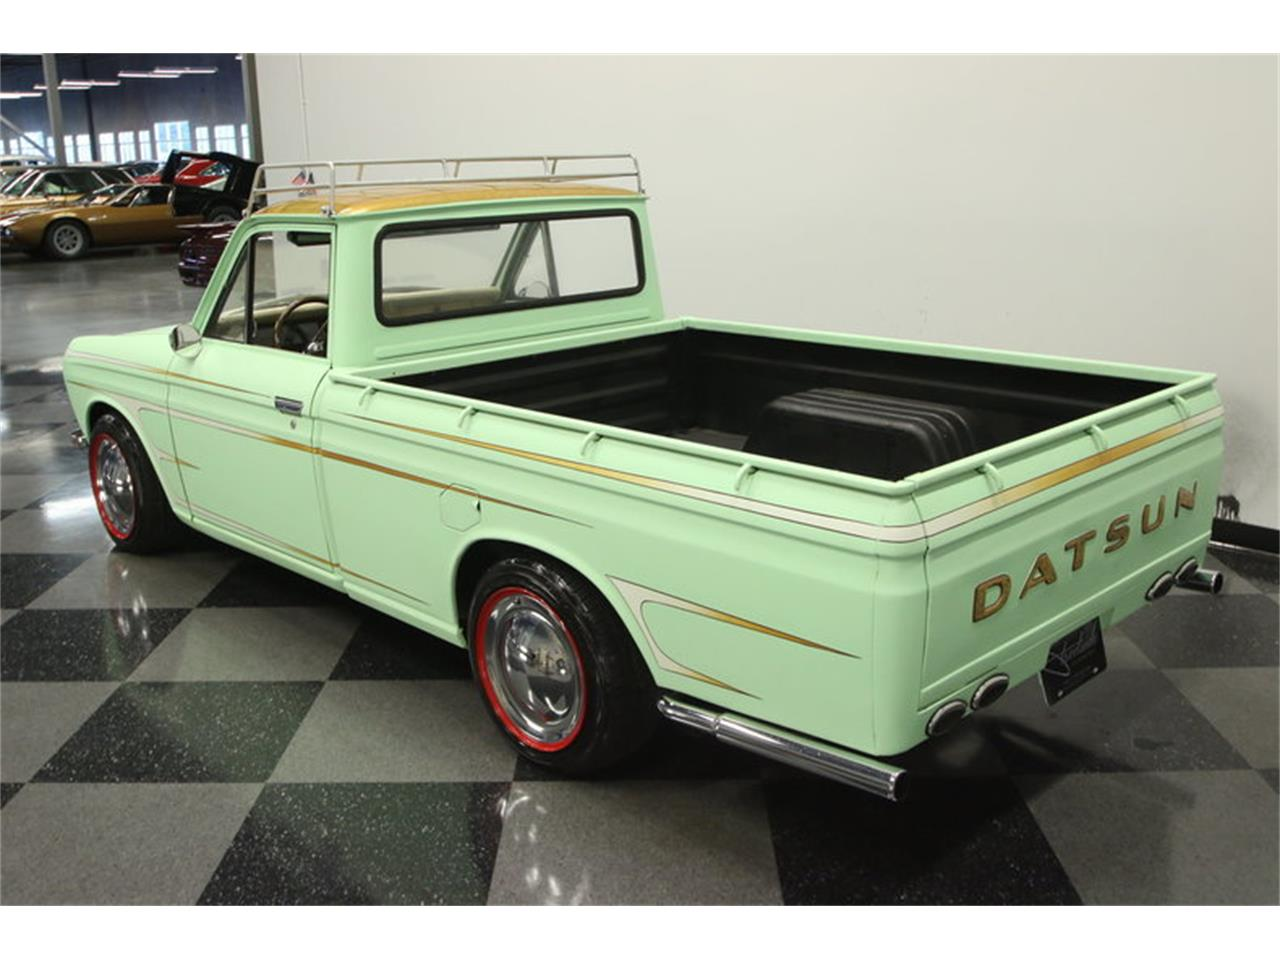 Large Picture of Classic '72 Datsun 1600 520 Pickup - $9,995.00 Offered by Streetside Classics - Tampa - MB90